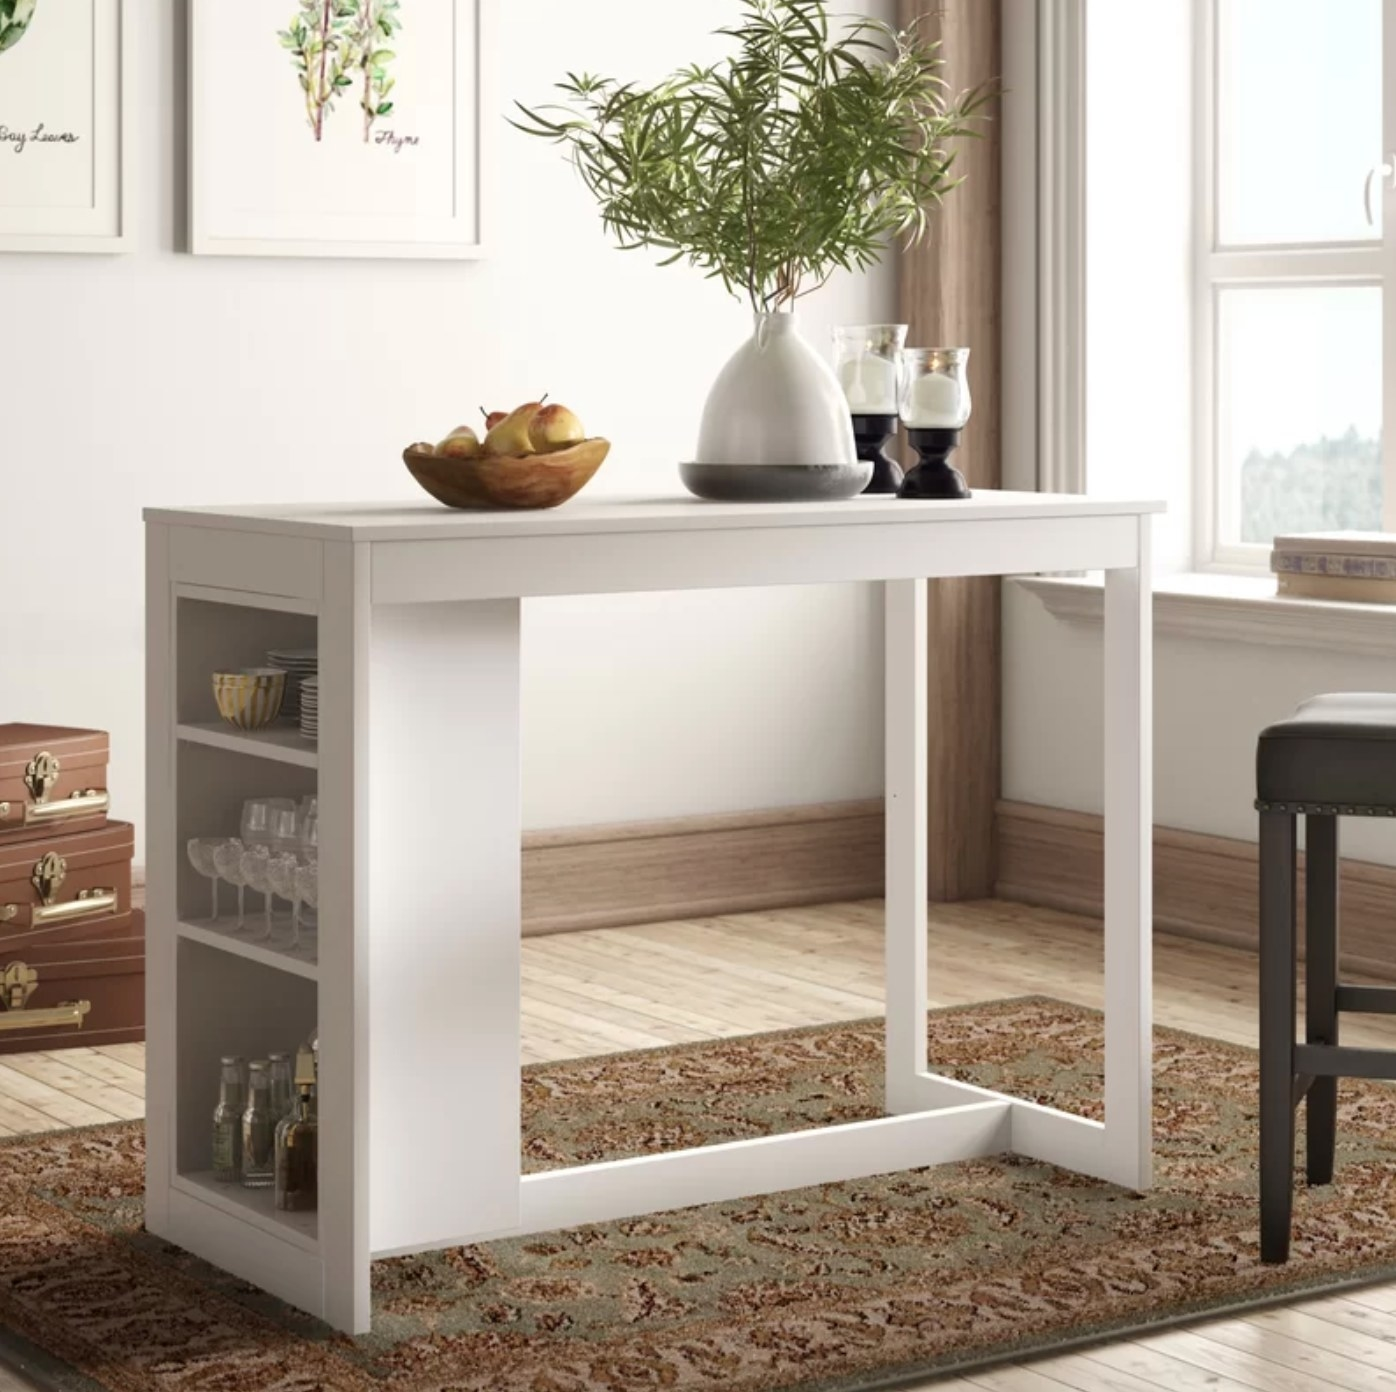 The counter height dining table in white